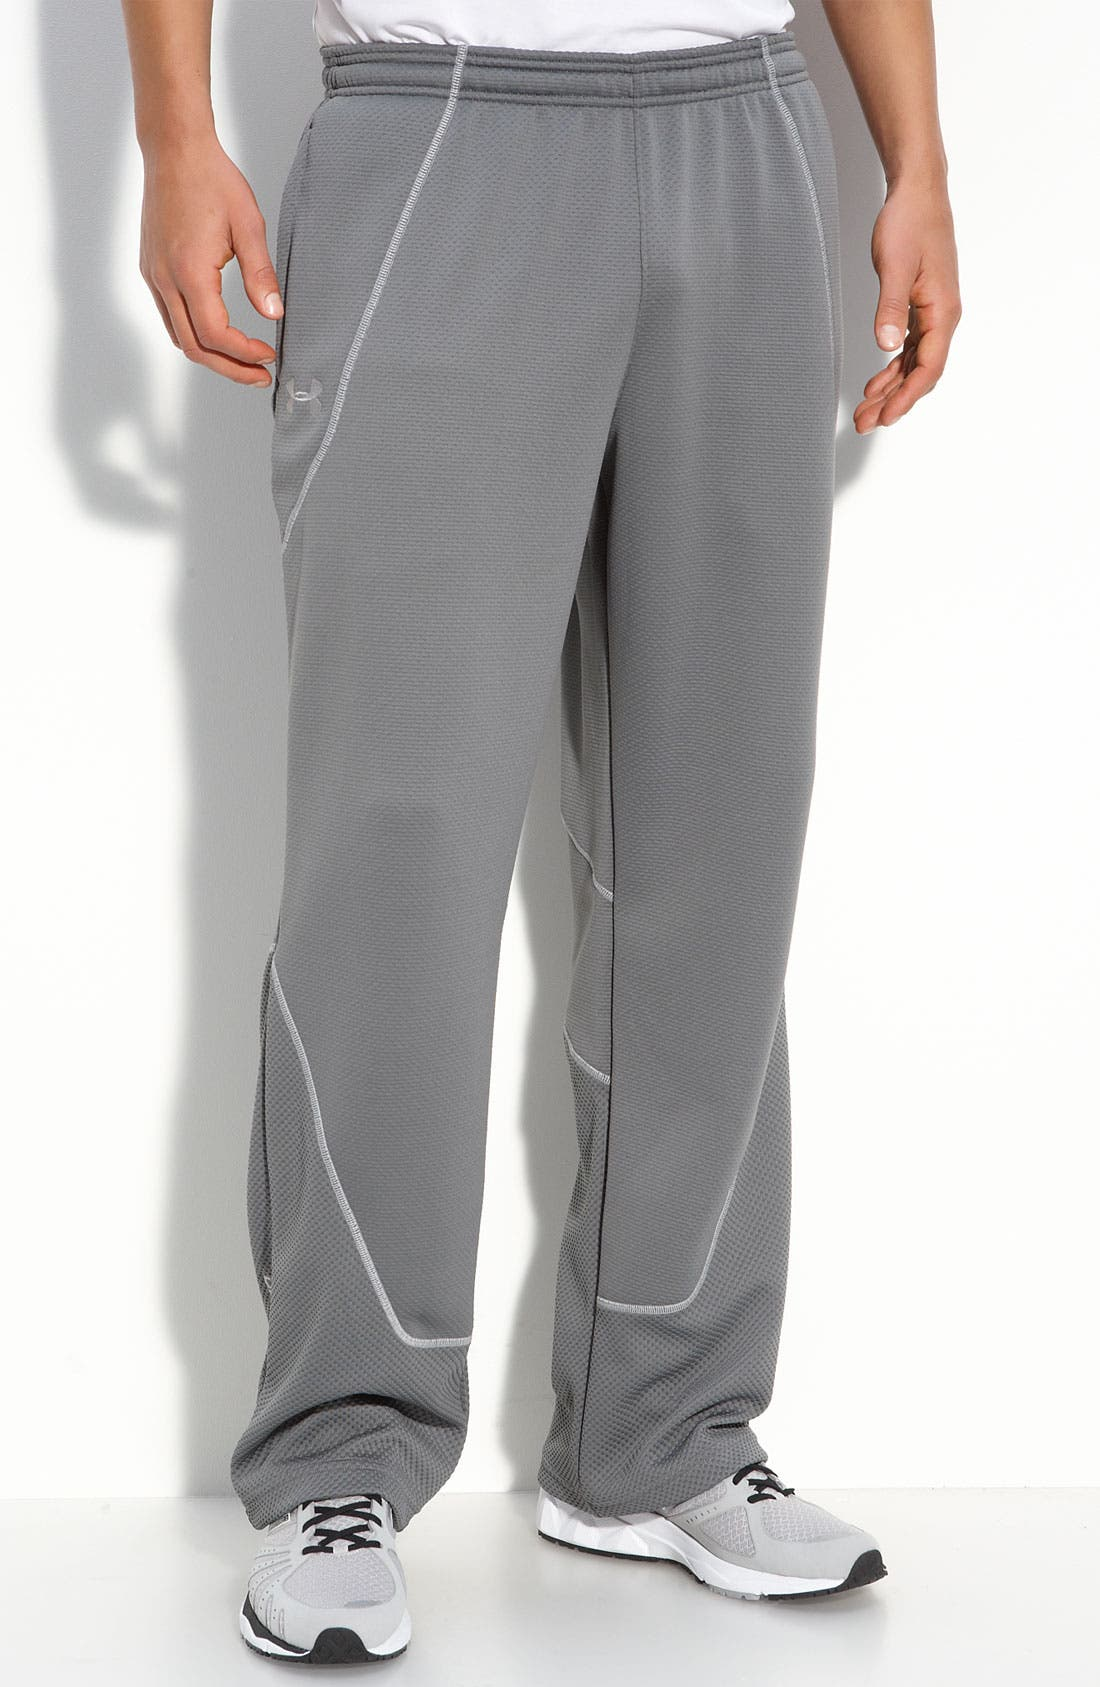 Main Image - Under Armour 'Fuego III' AllSeasonGear® Pants